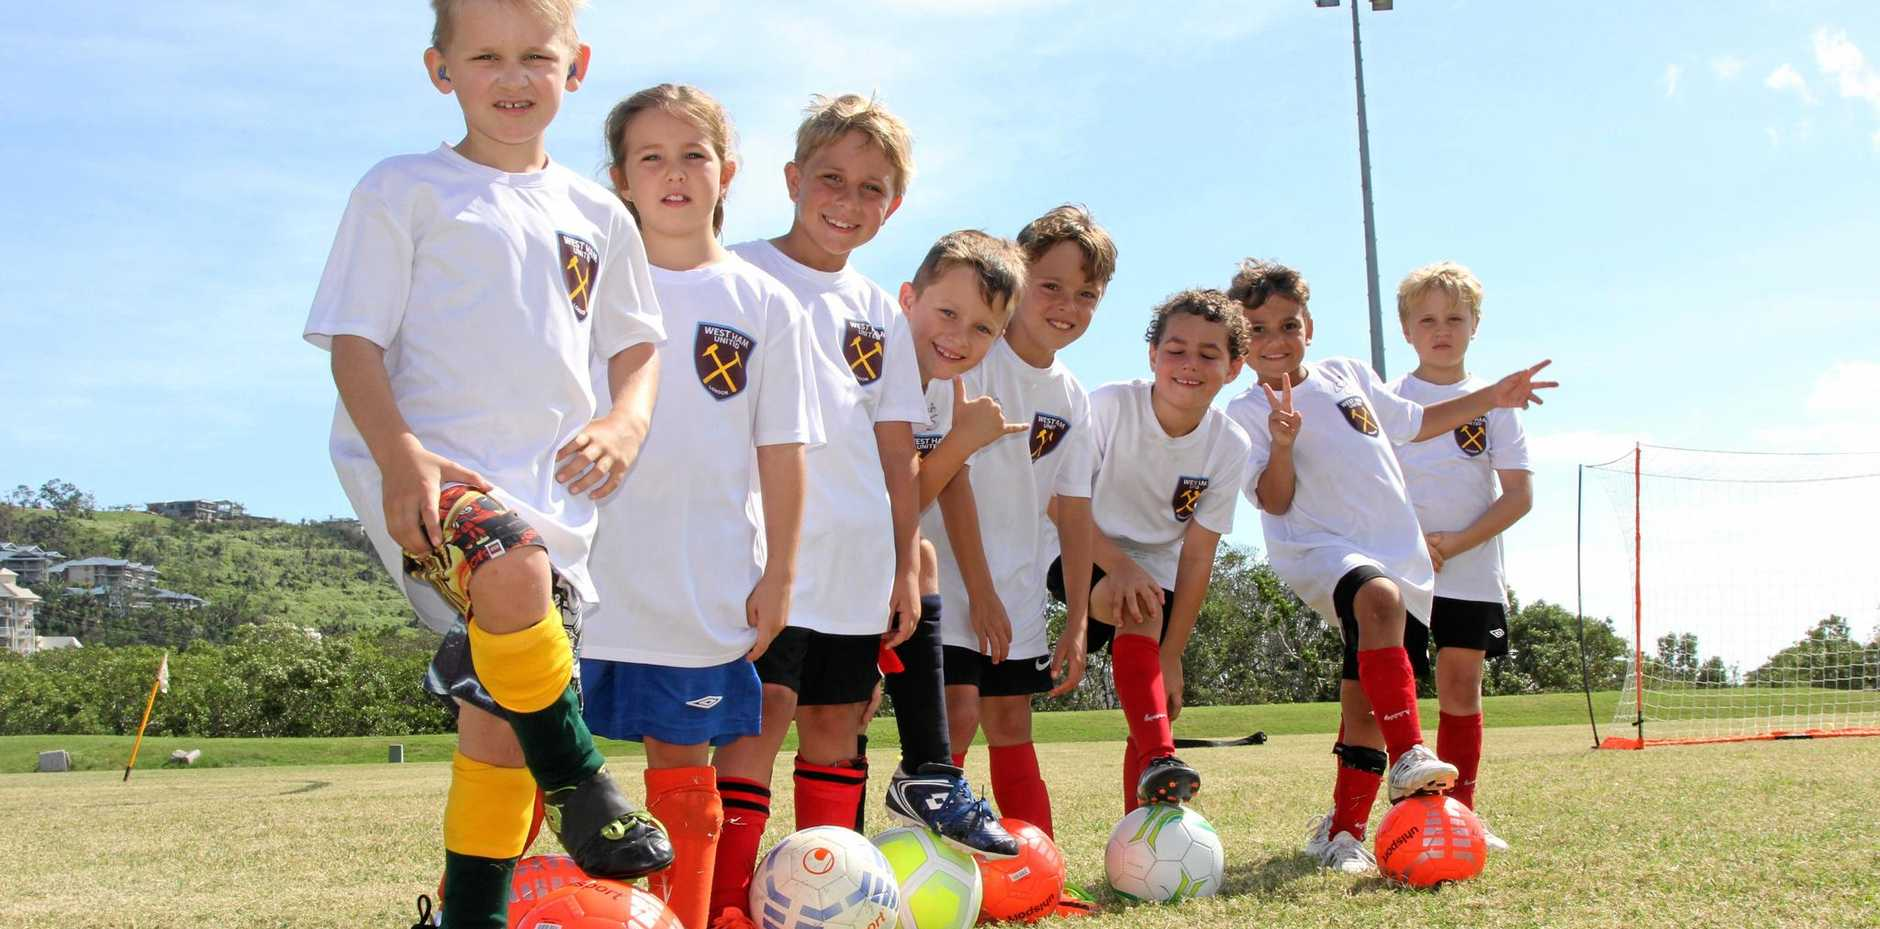 IN TRAINING: Kids at the West Ham soccer camp held at the Whitsunday Sportspark recently.